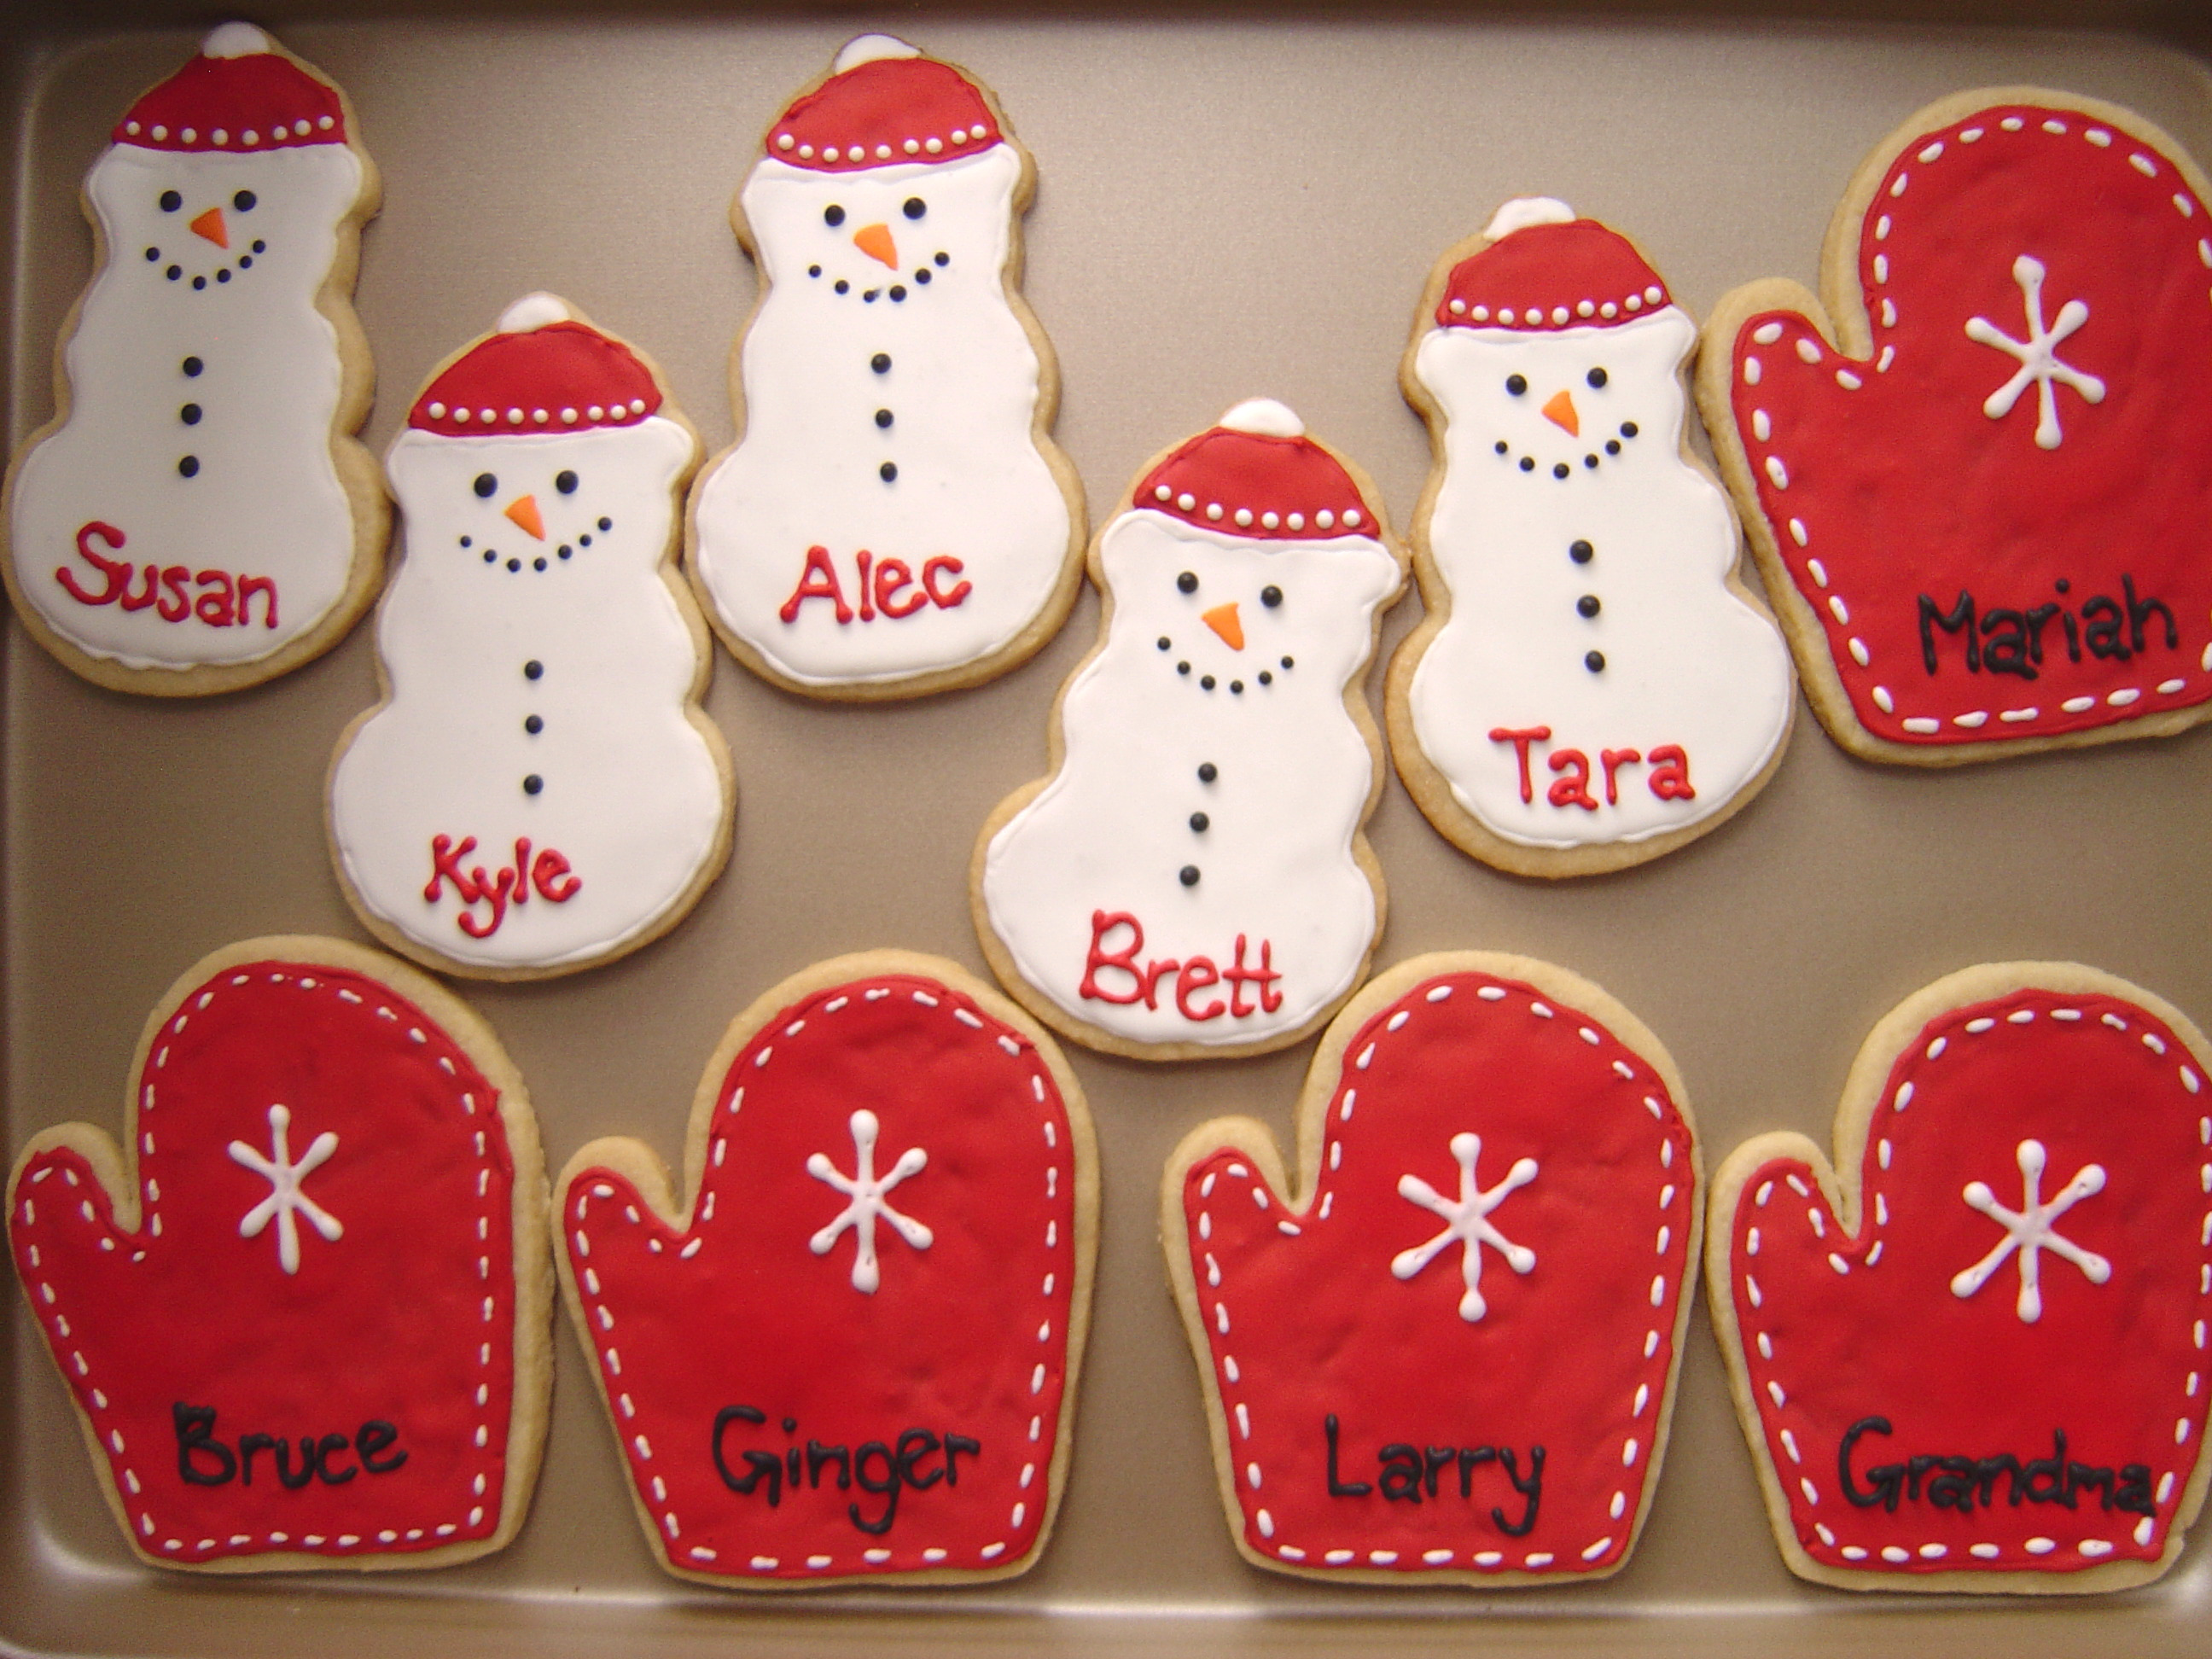 How to make christmas sugar cookies - The Cookie Recipe Is Incredibly Easy And The Same One Though Without The Cinnamon I Used For The Pumpkin Cutouts I Made For Halloween